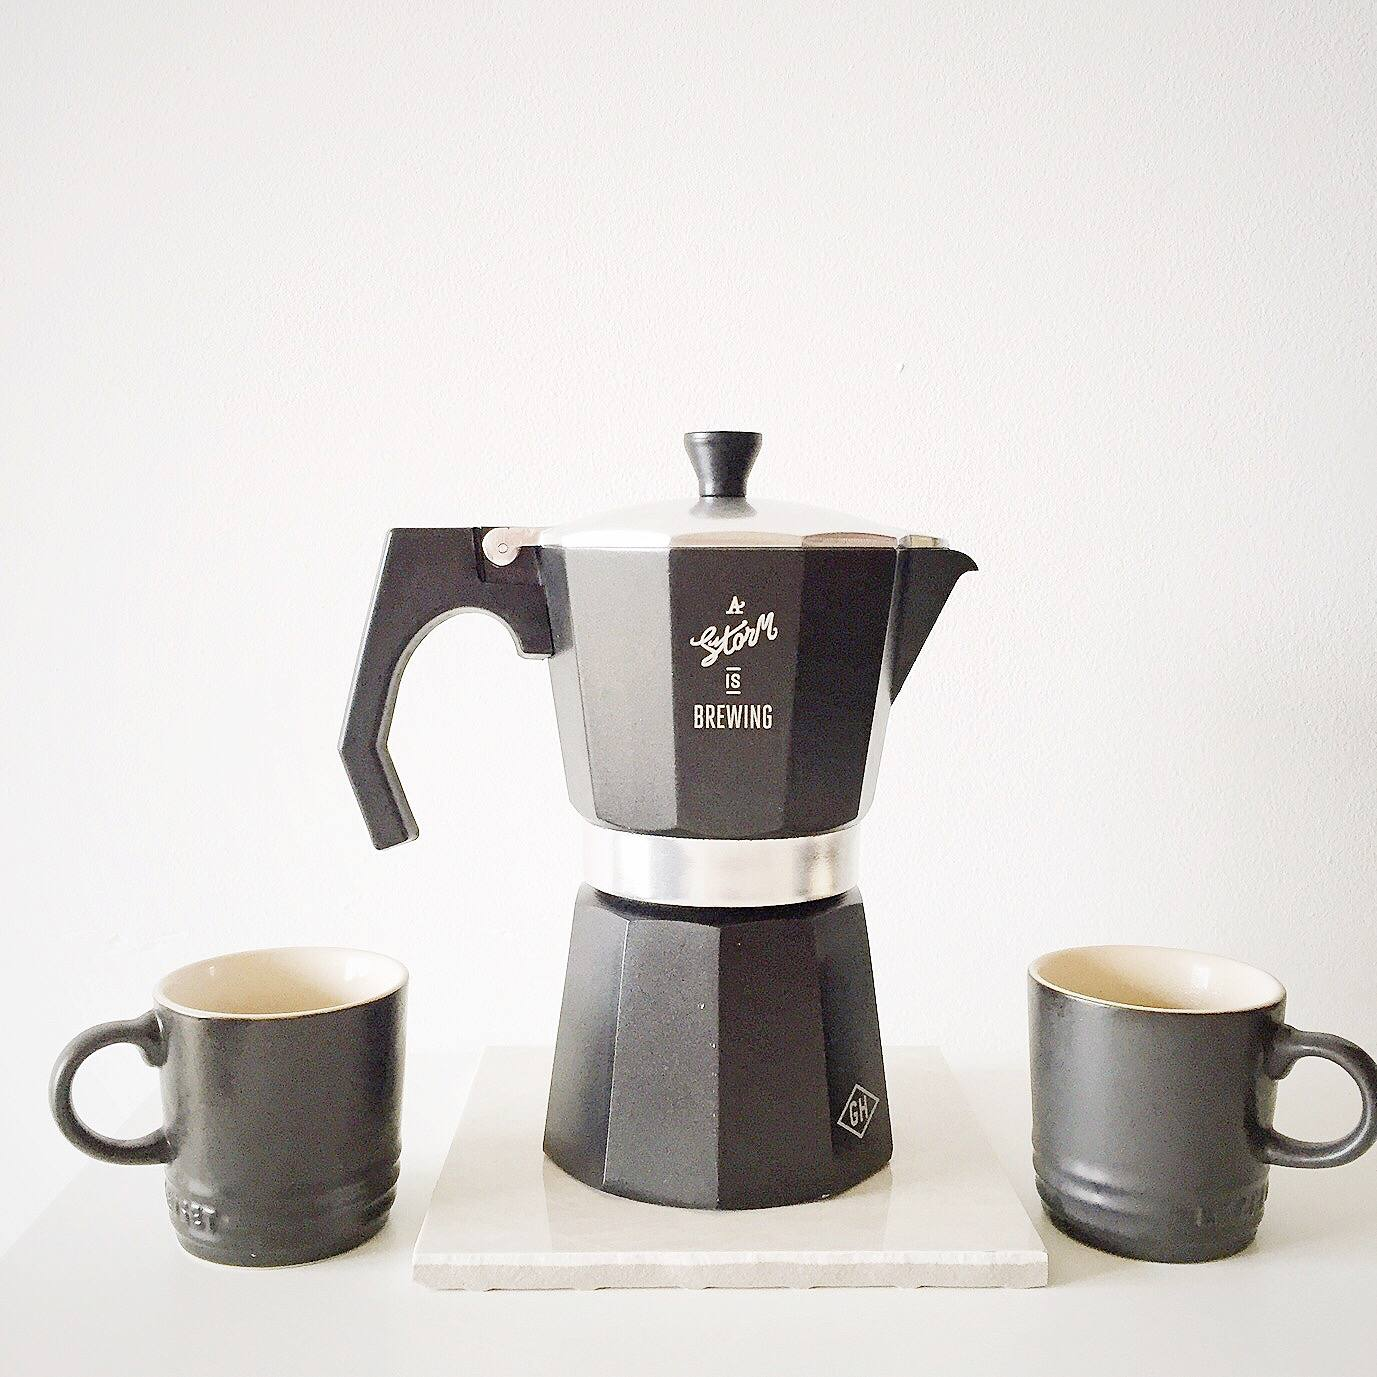 Stove top coffee espresso maker